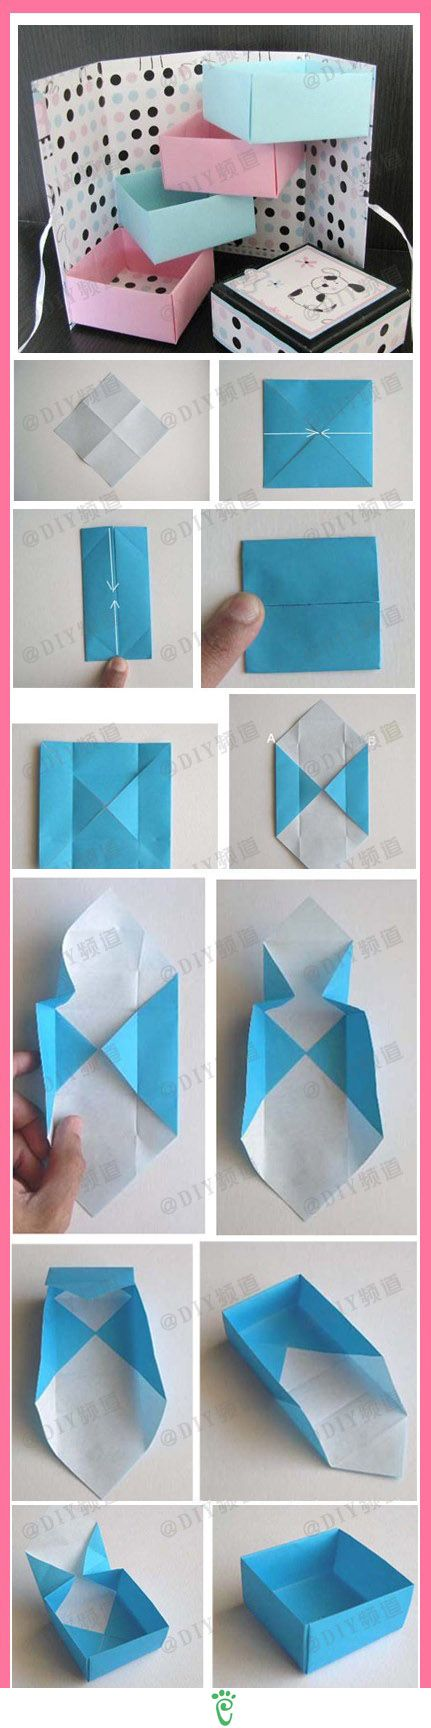 DIY Paper Box diy craft crafts easy crafts craft idea diy ideas home diy easy diy home crafts diy craft: